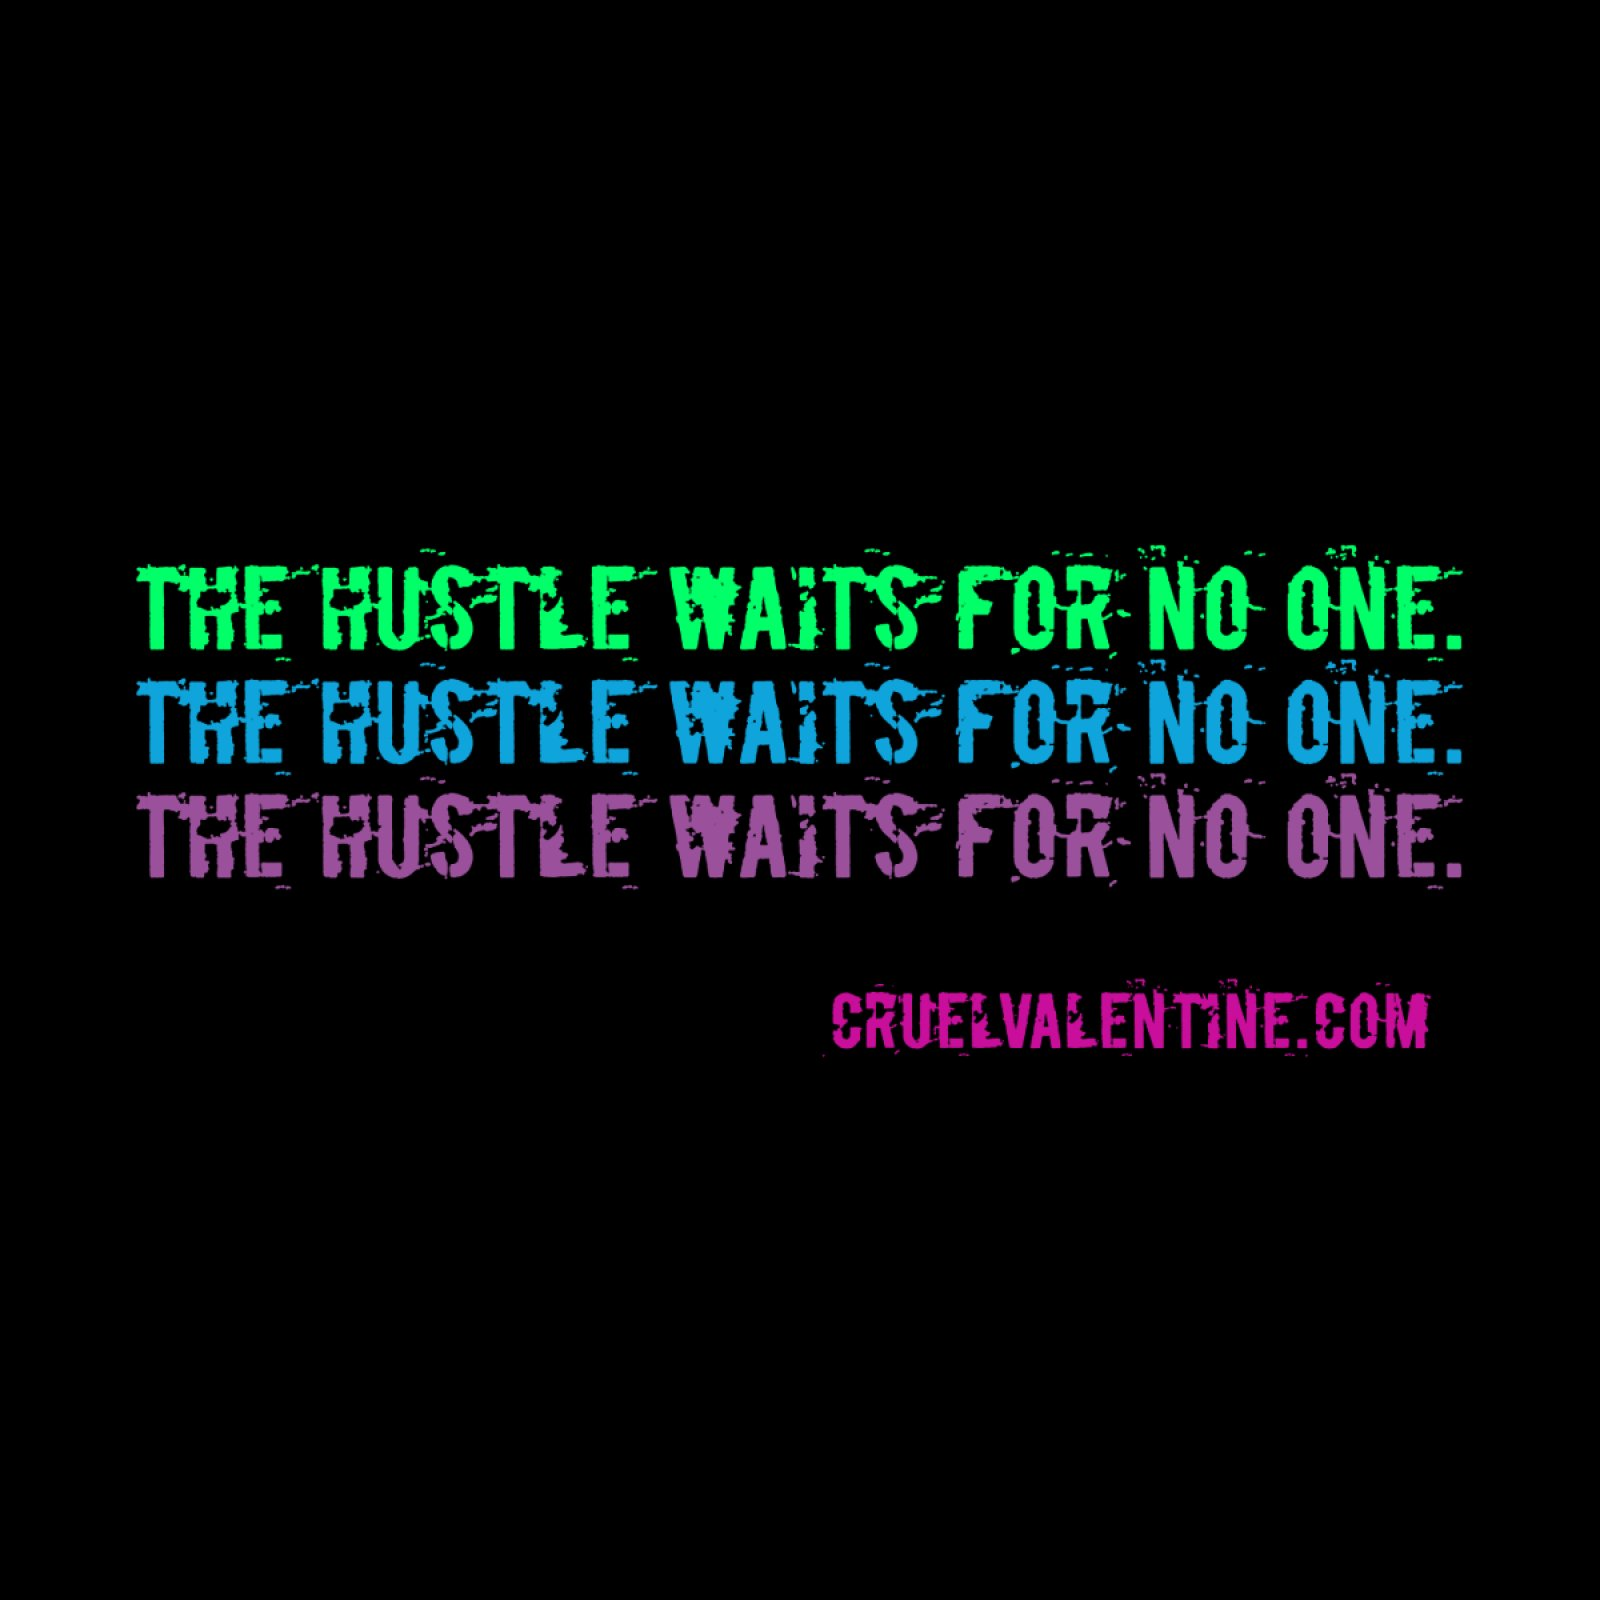 The Hustle Waits For No One in Blue - Available on Shirts and More